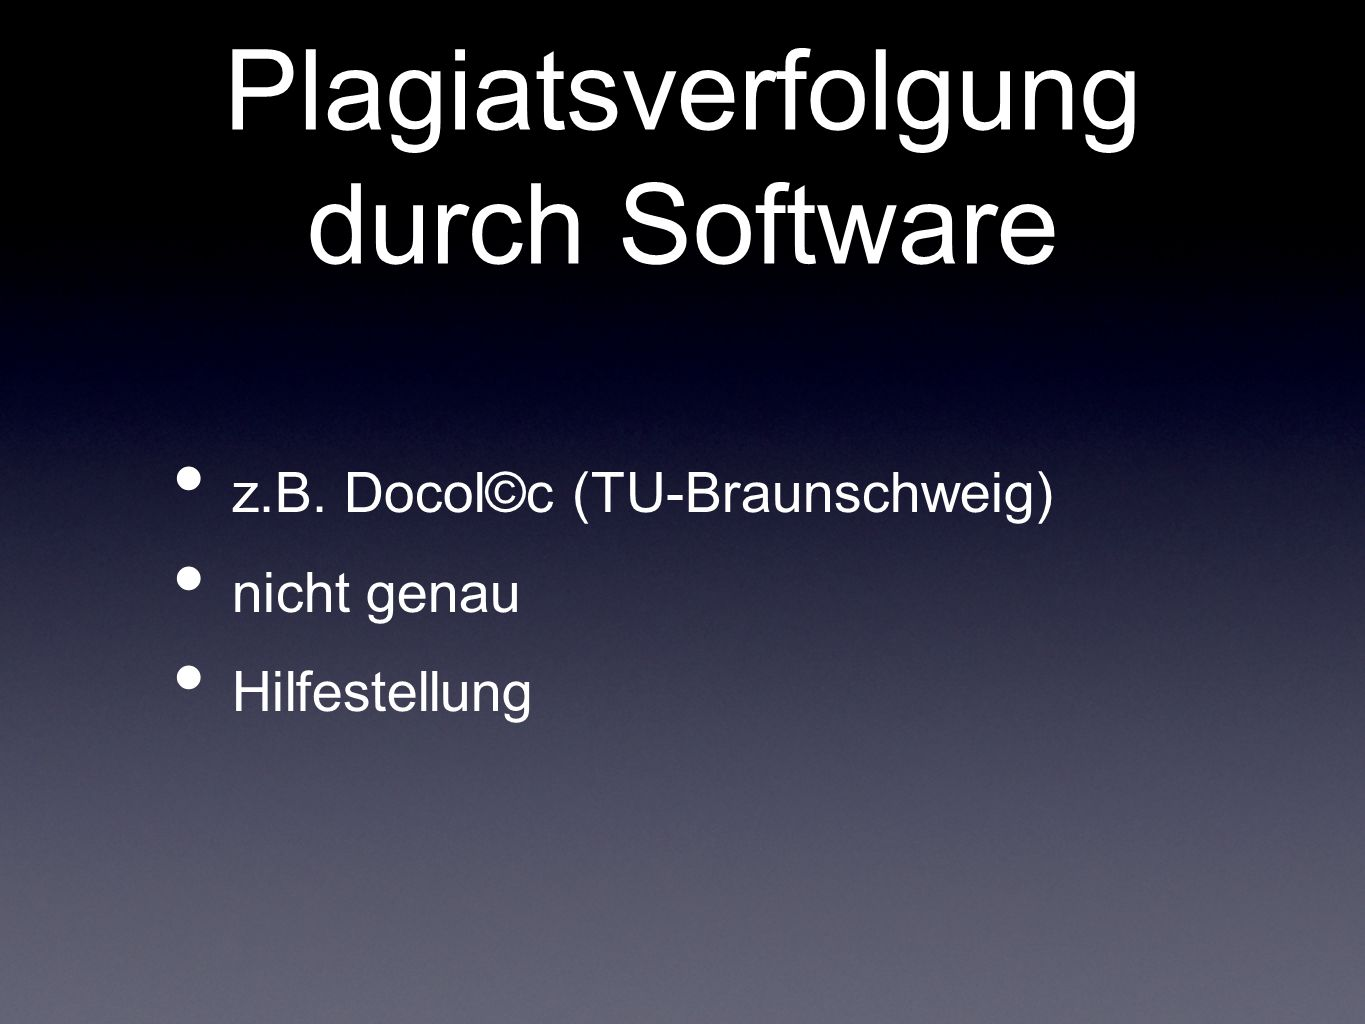 Plagiatsverfolgung durch Software